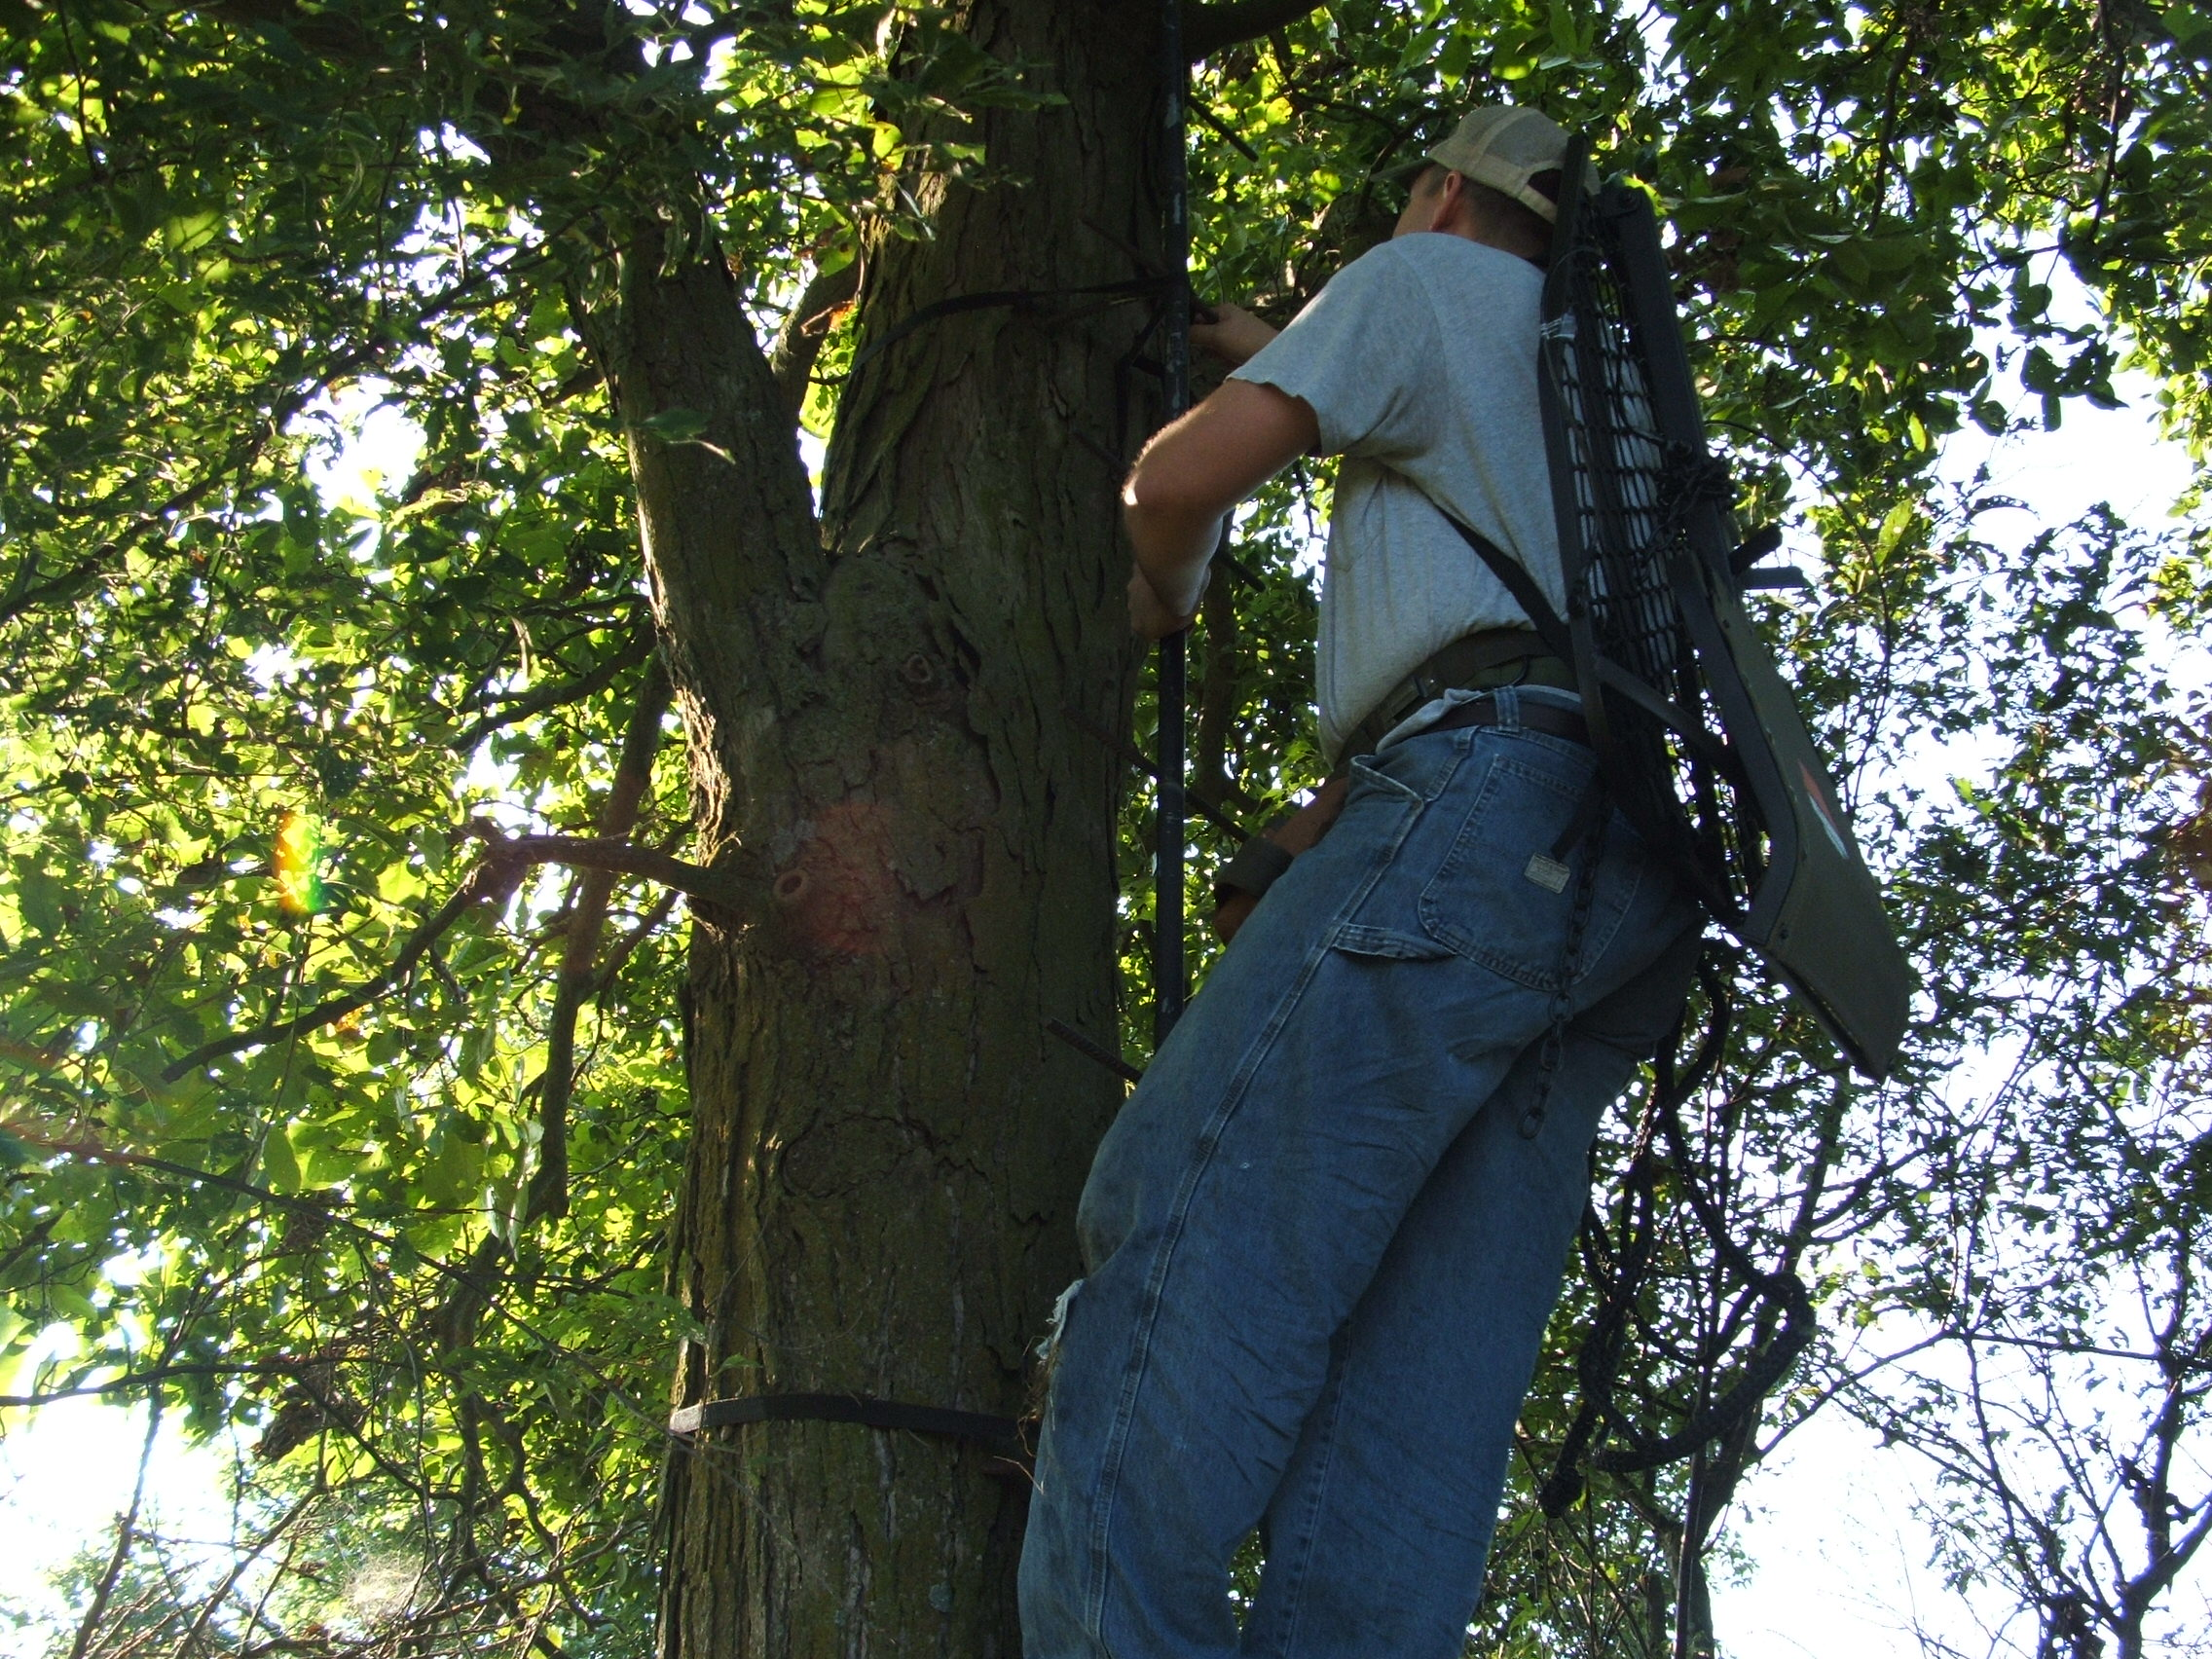 You must do one last tree stand inspection in late summer if your stands have been out all year.  I will replace any stand that won't pass a visual test...I also put 10 ton straps around each stand, and install full length life lines with prusik knots.  Any trimming is better done now last minute as opposed to doing it your first time in during the season.